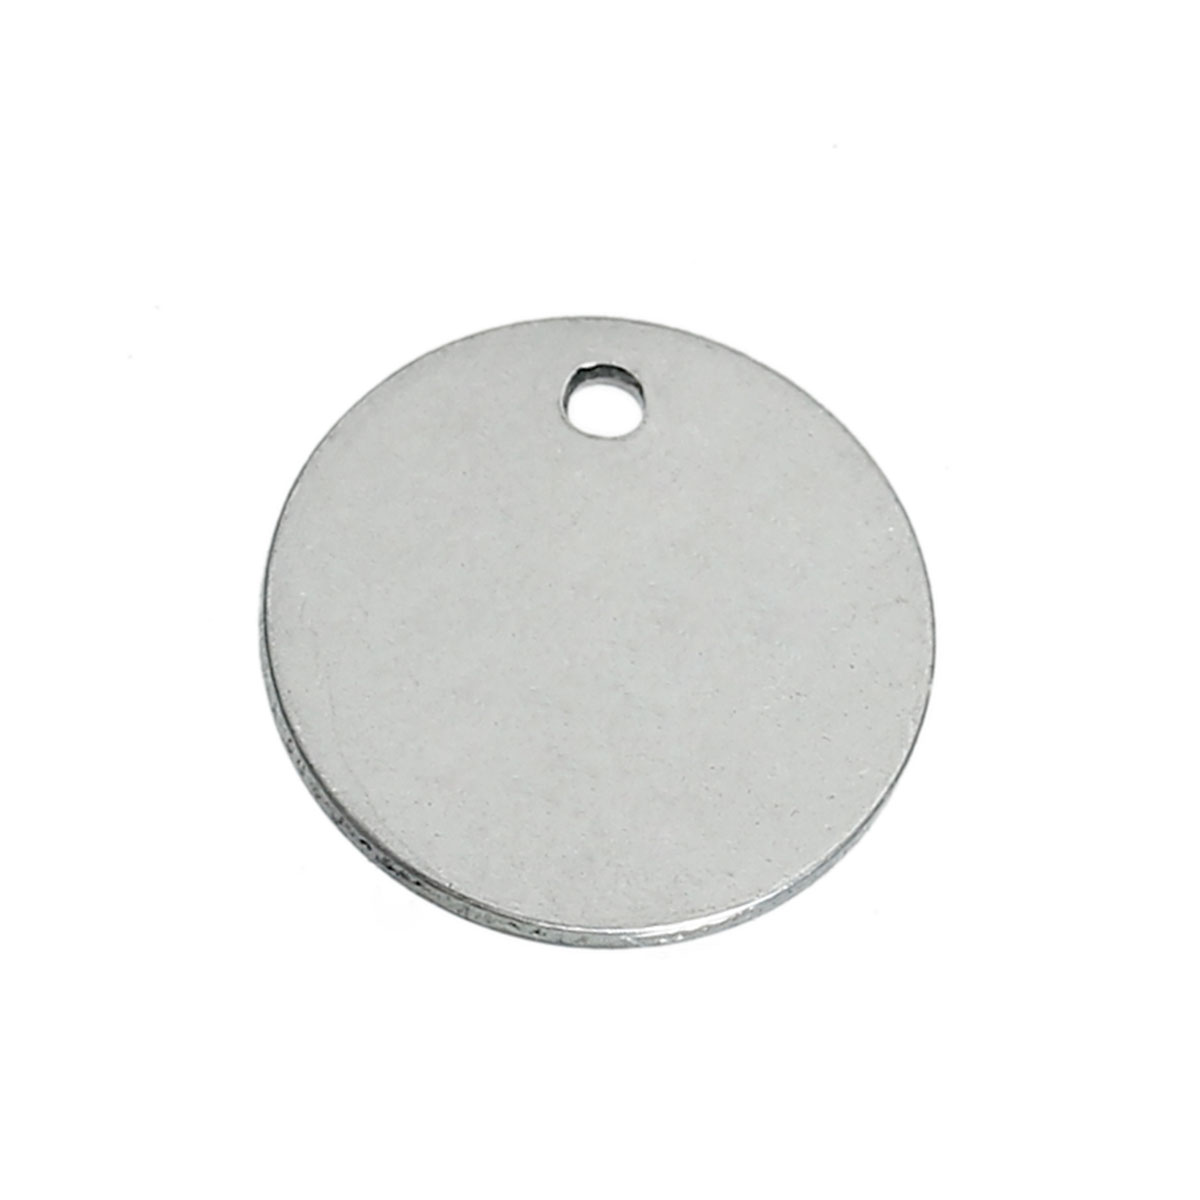 """Stainless Steel Blank Stamping Tags Charms Pendants Round Silver Tone 15mm( 5/8"""") Dia,20 PCs 2016 new(China (Mainland))"""